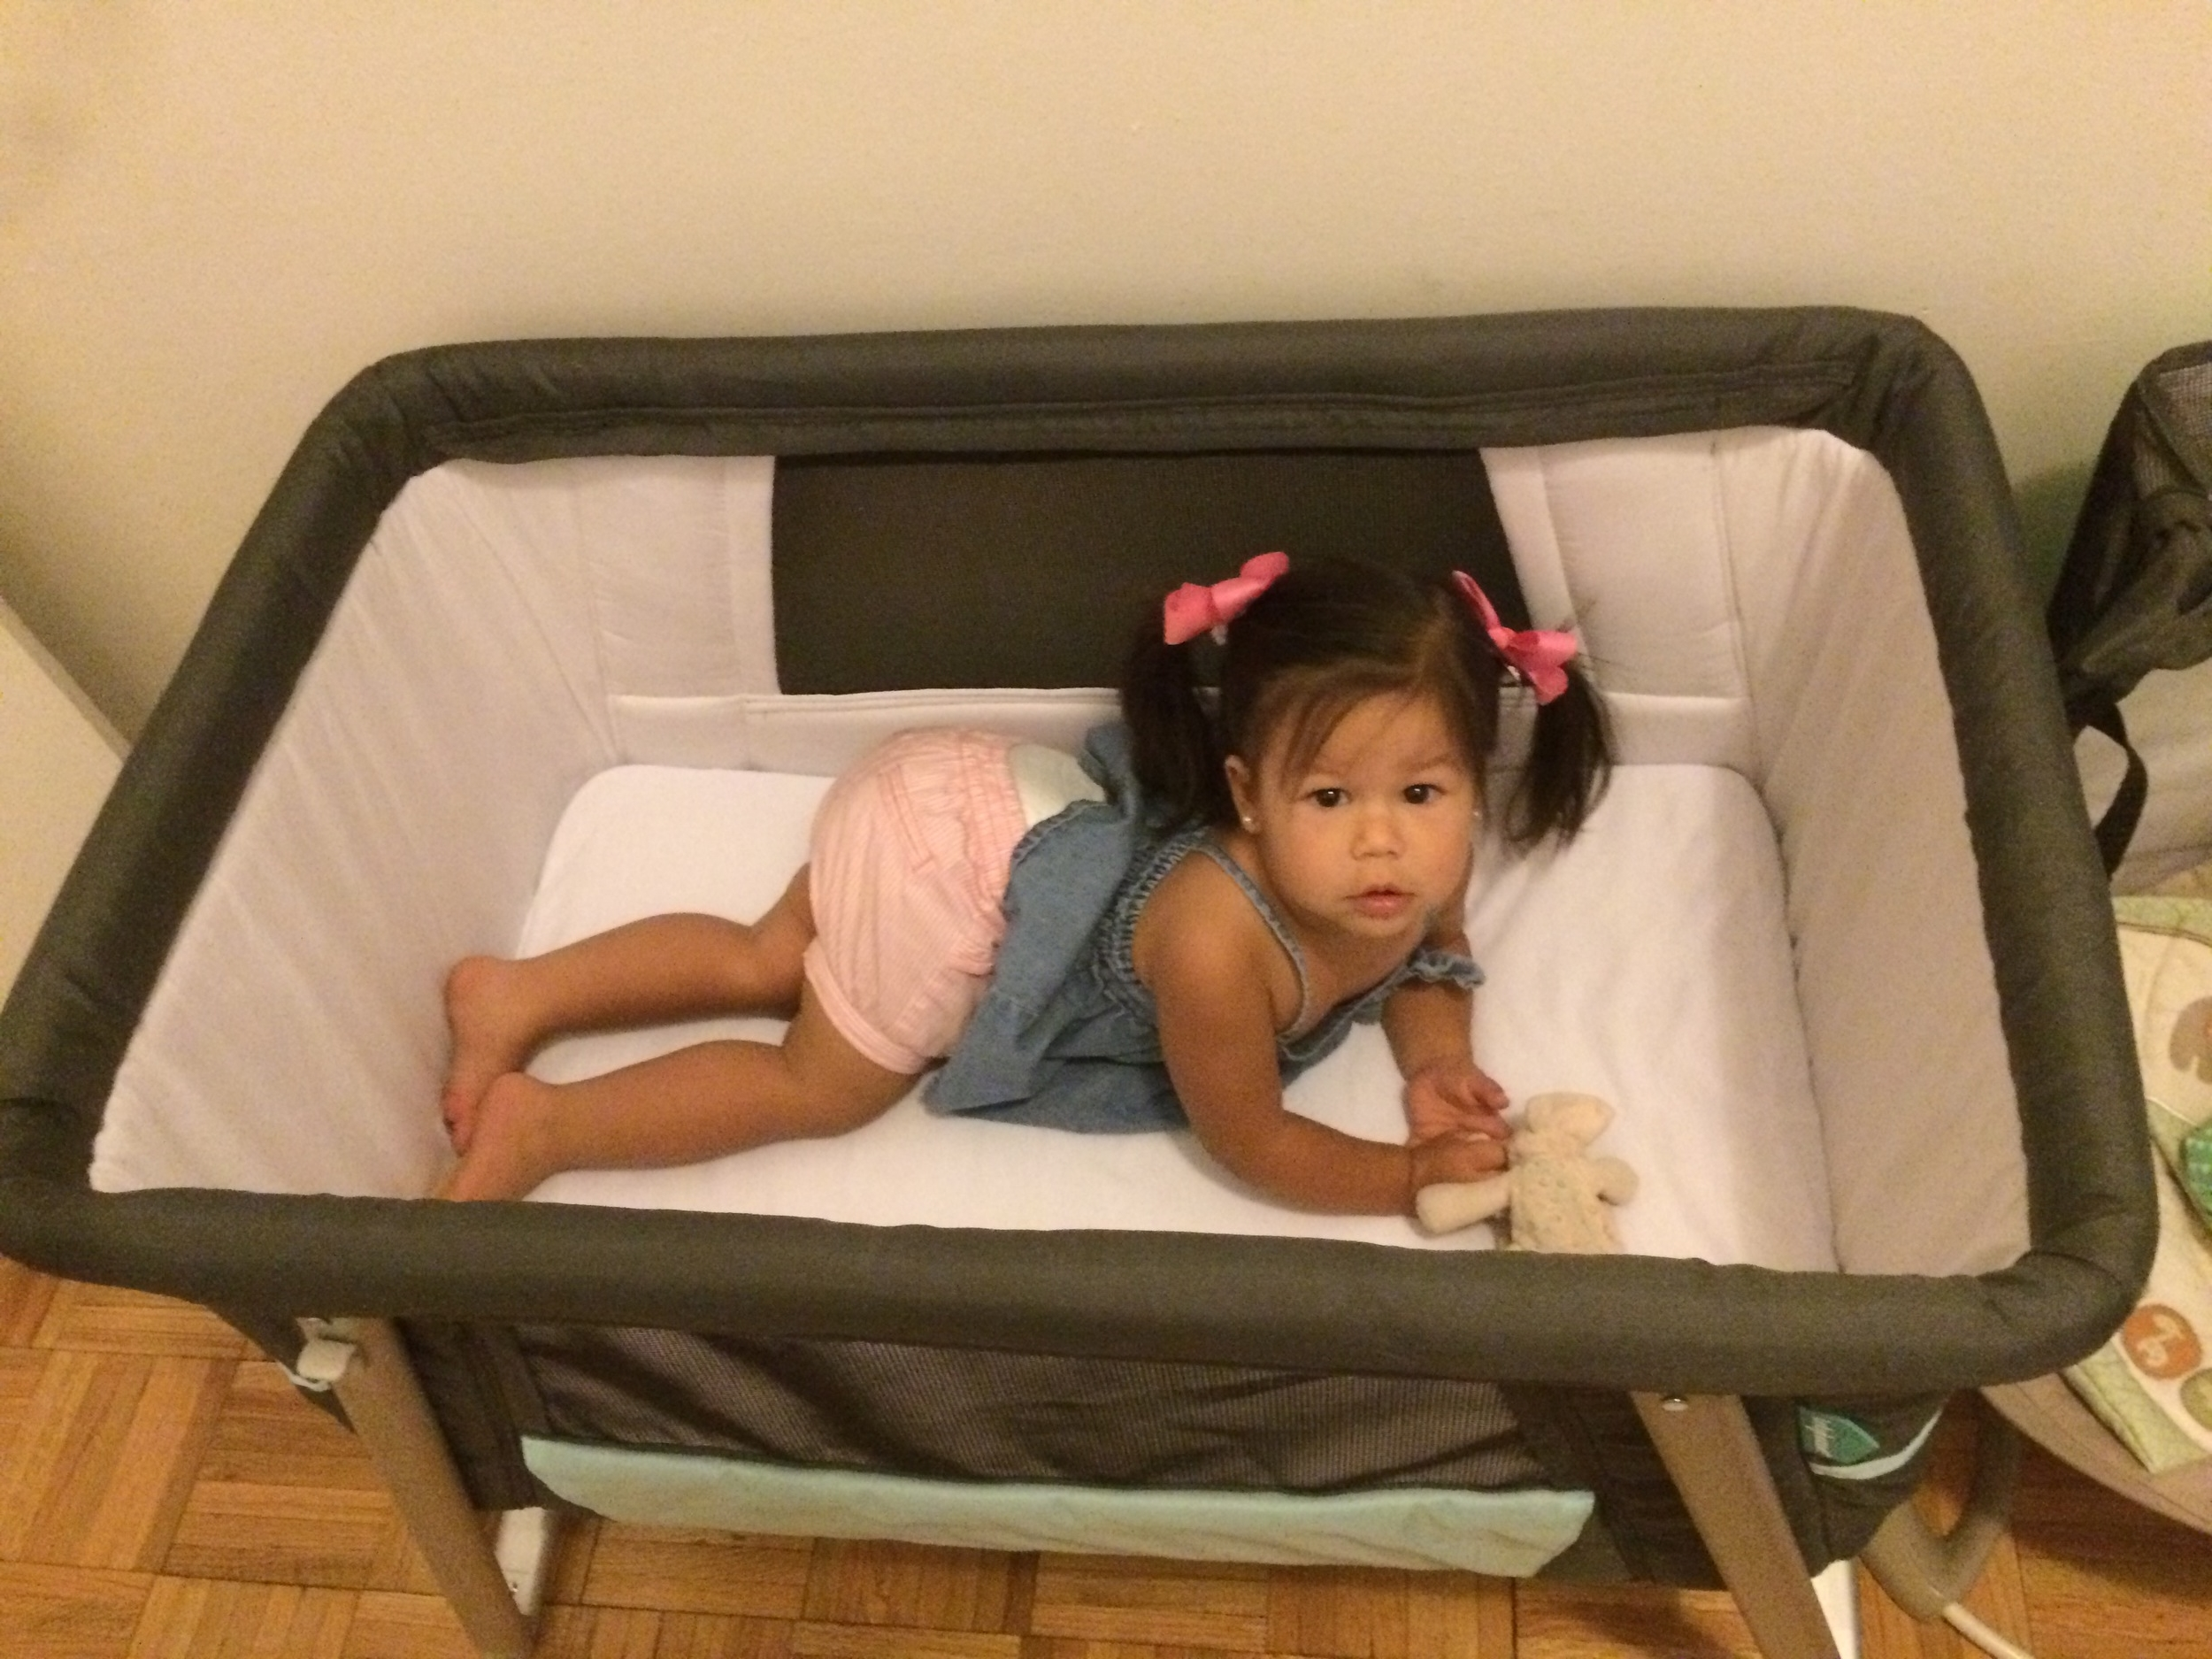 Trying out Fynn's new crib